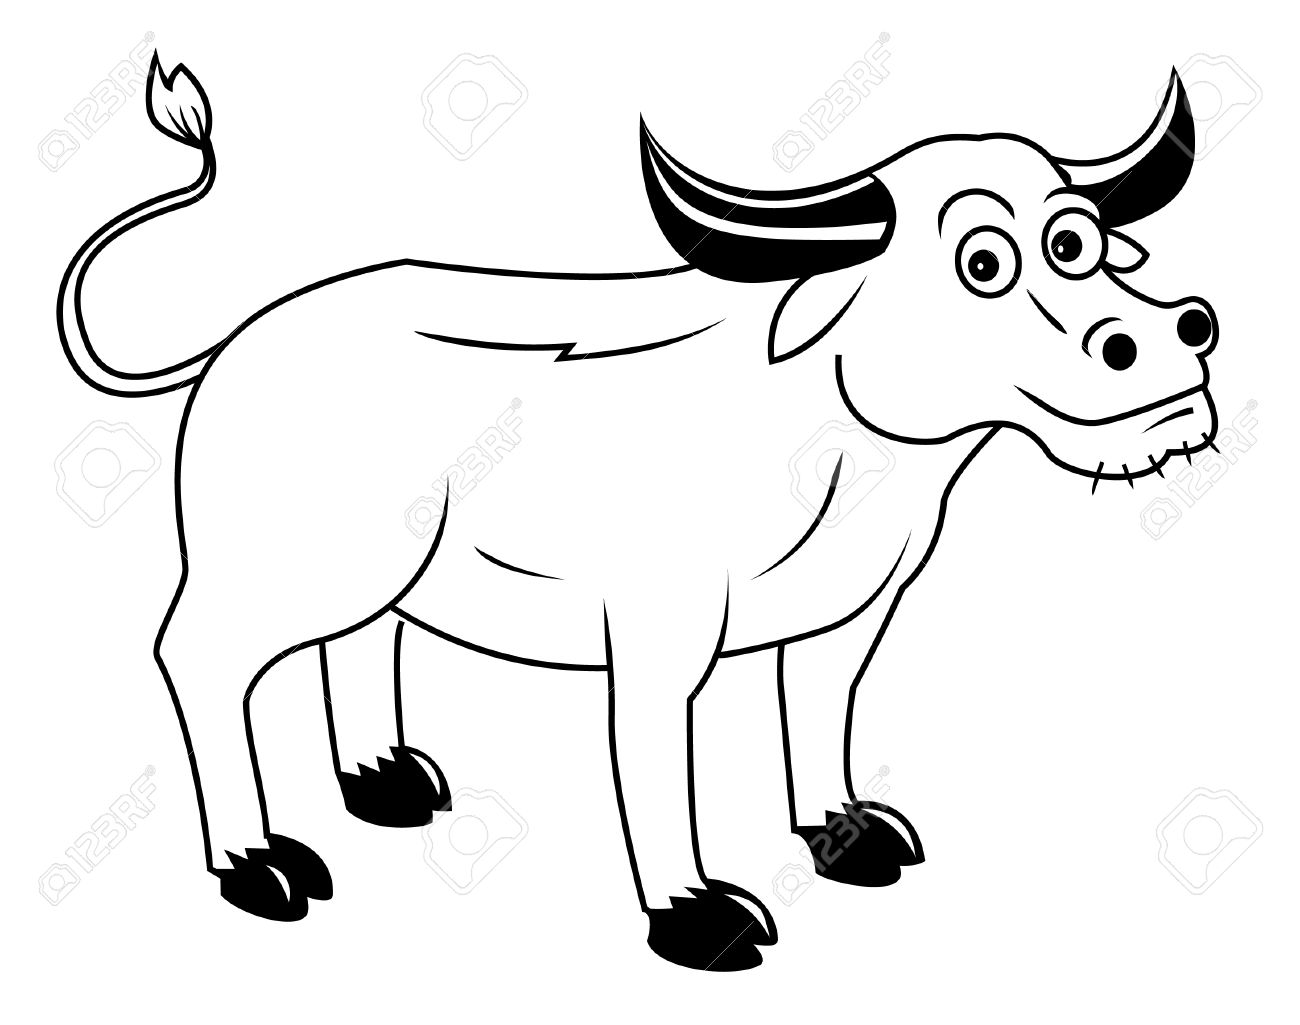 Buffalo Clipart Black And White Buffalo Black And White